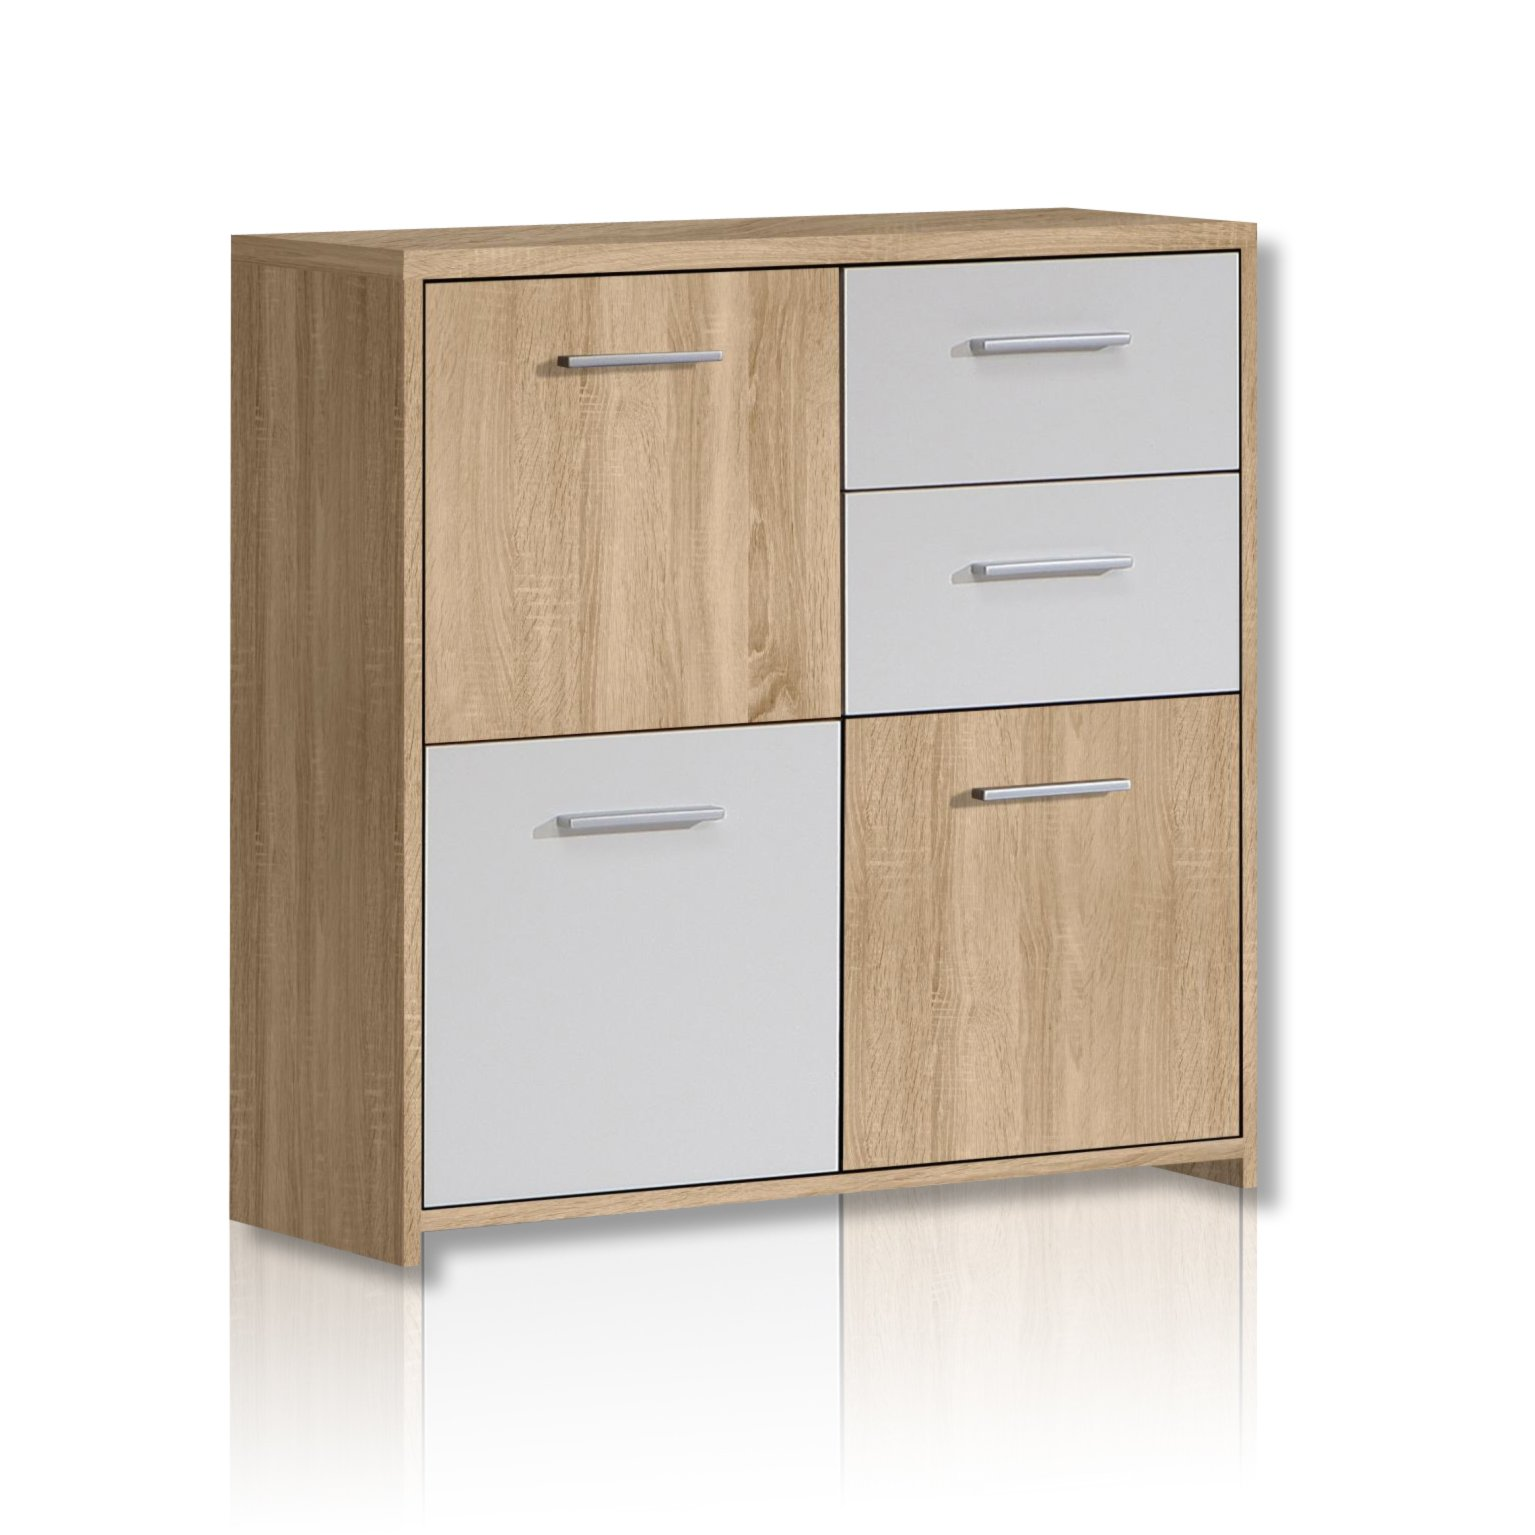 Kommode Roller Kommode Quadro Sonoma Eiche Weiß Kommoden And Sideboards